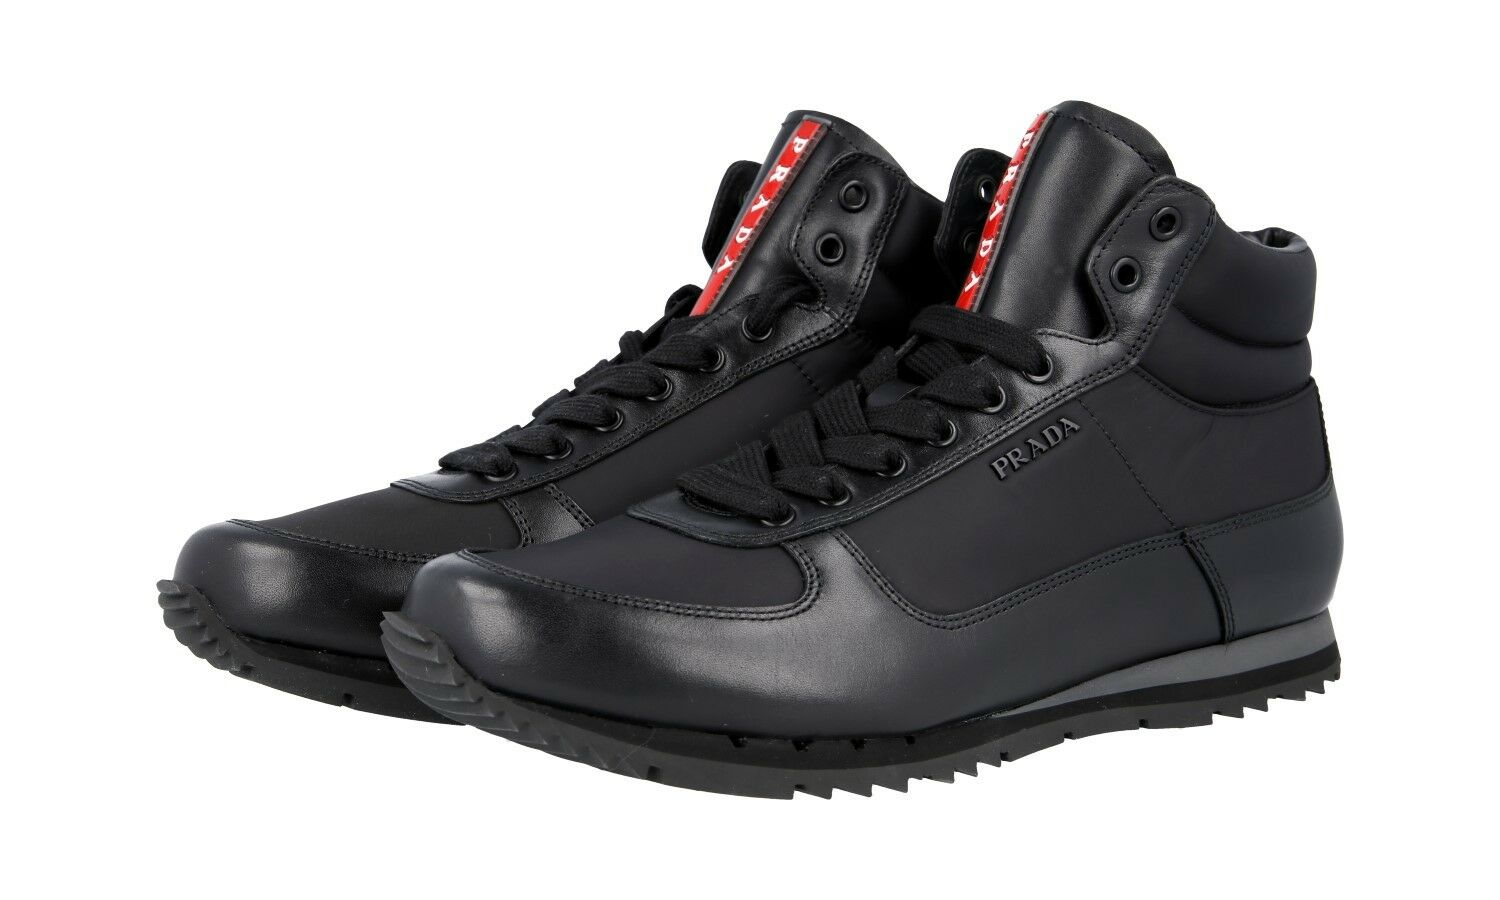 shoes HIGH-TOP SNEAKER PRADA LUSSO 4T2782 black NUOVE 9 43 43,5